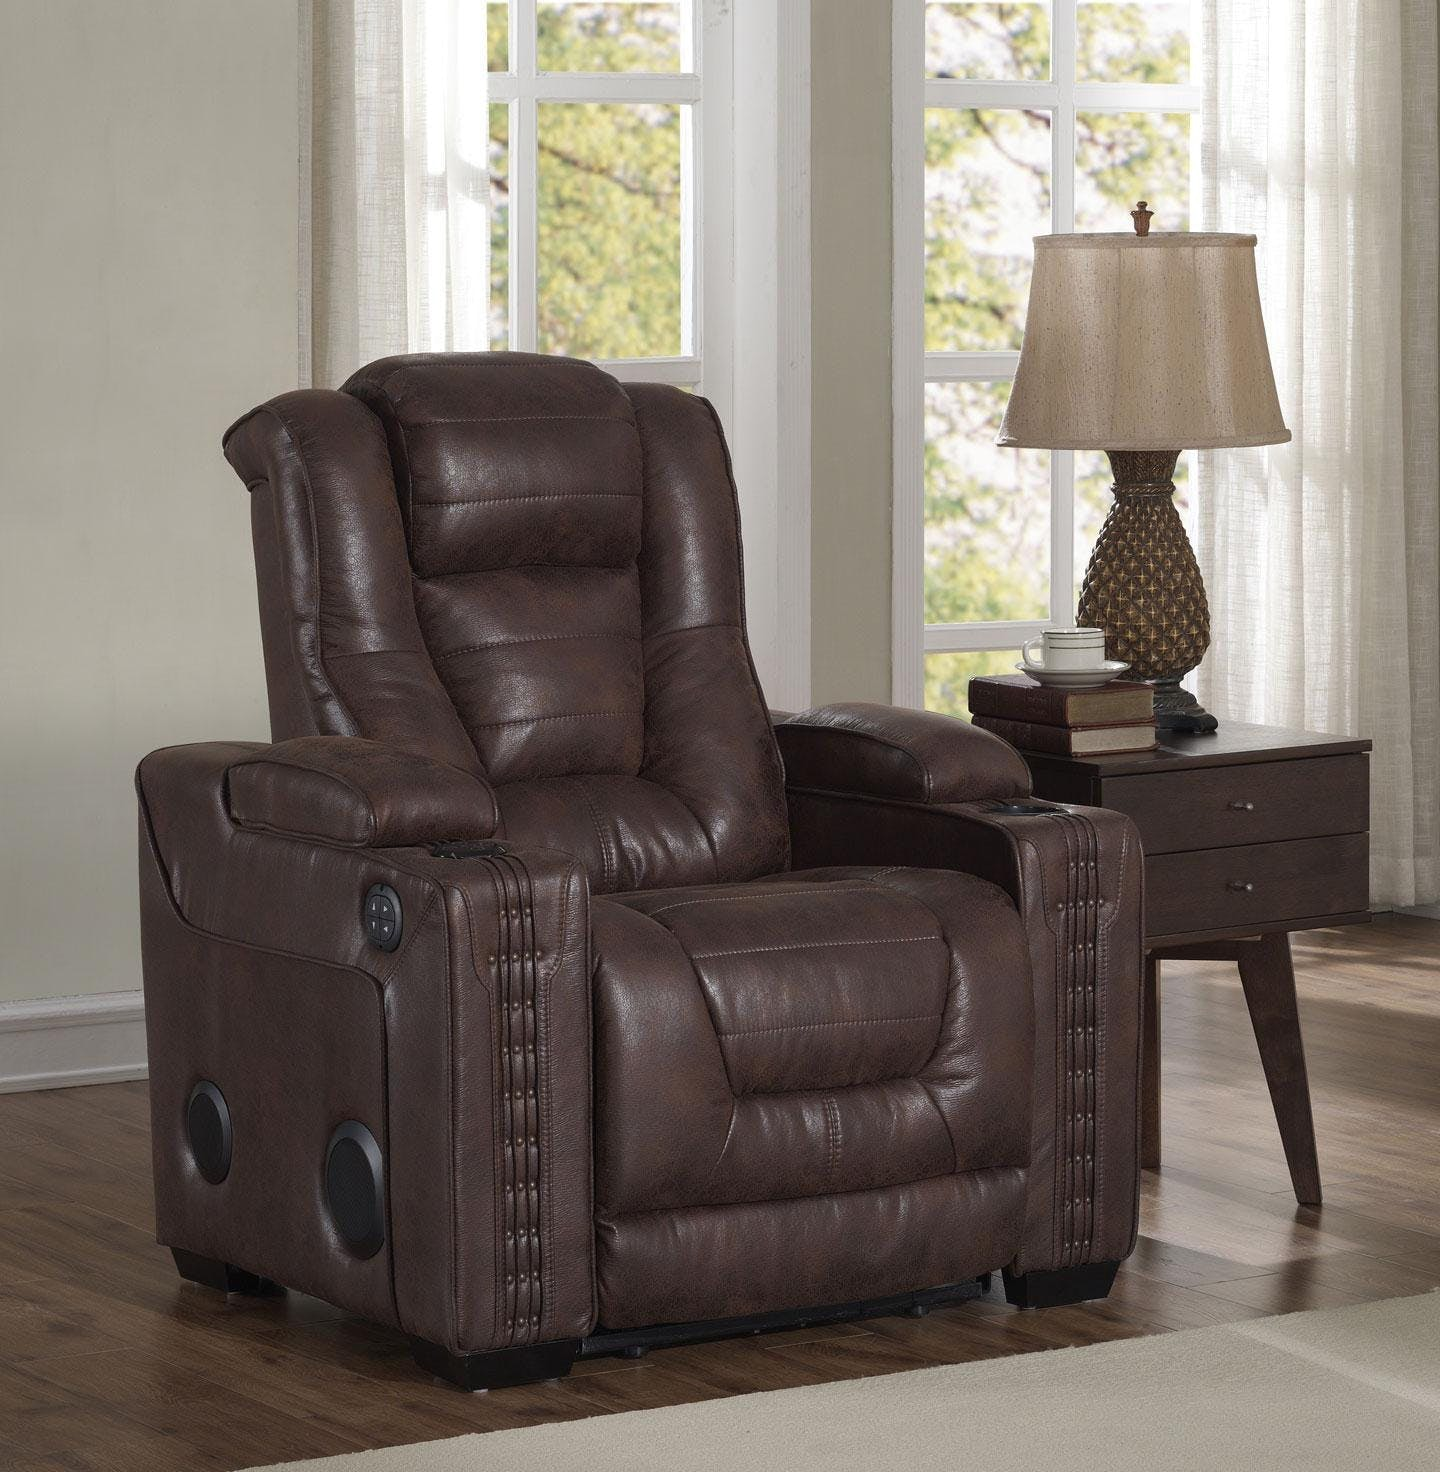 Prime Resources International Living Room Eric Church Power Recliner 052720 - Furniture Fair ...